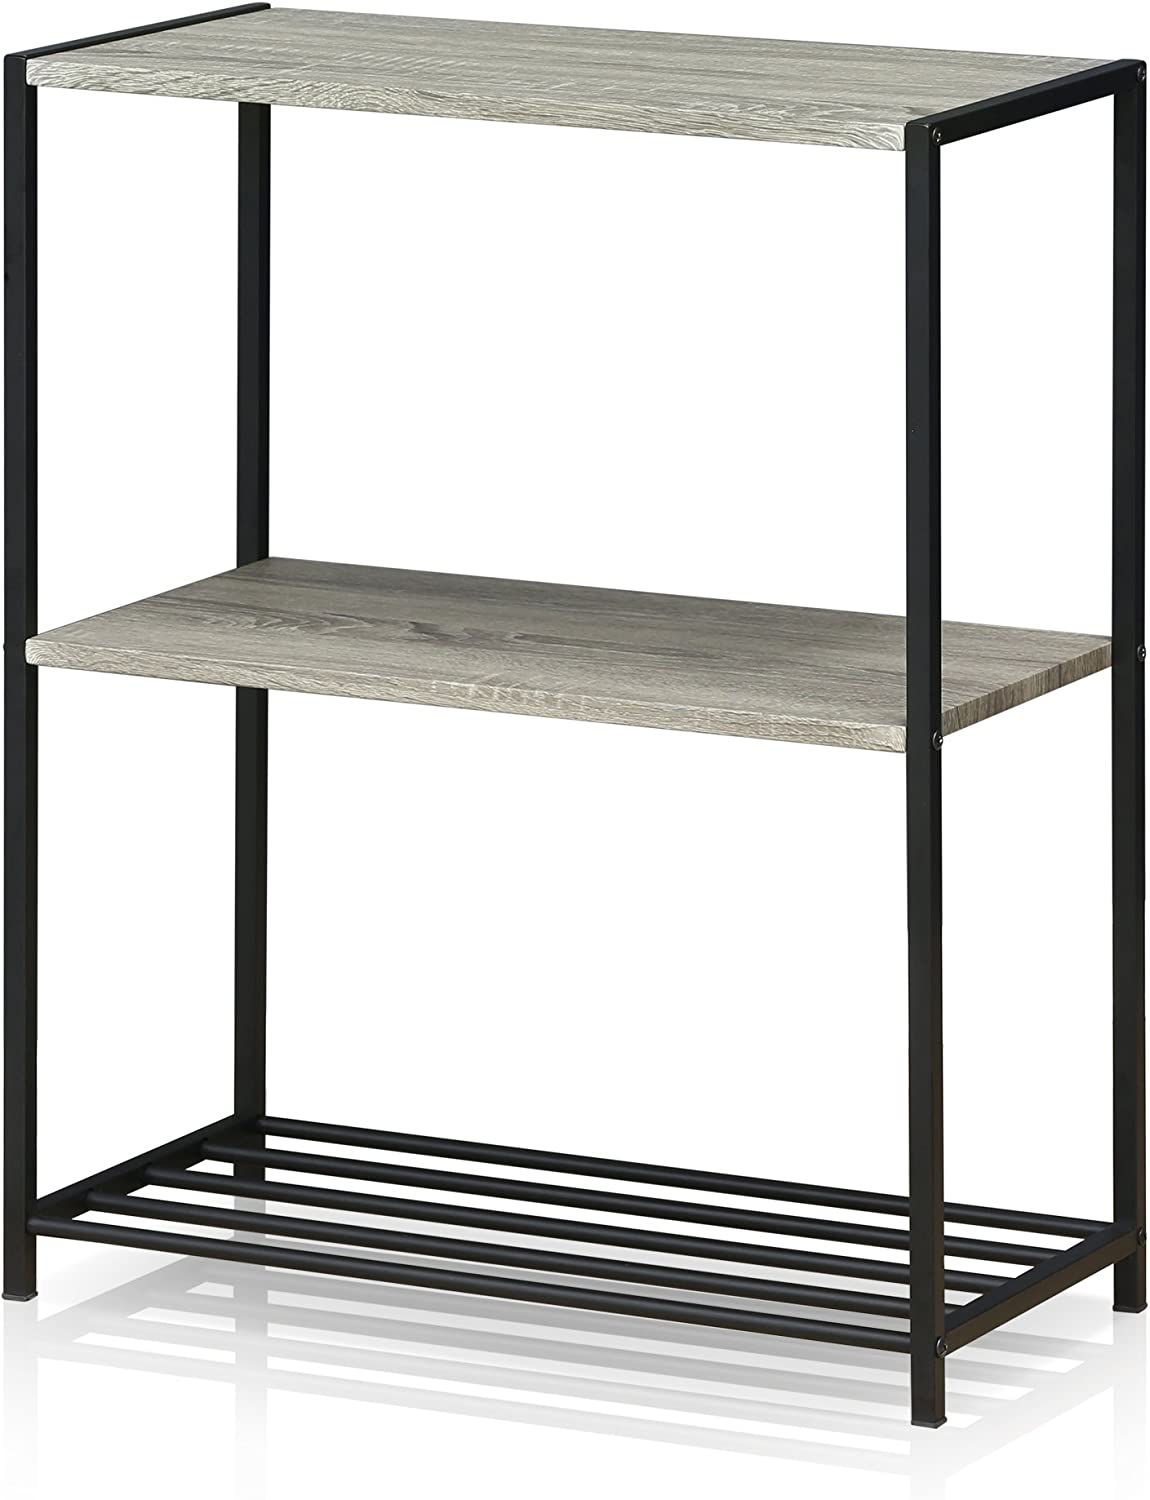 Furinno FM6075R-3DO Modern Lifestyle 3-Tier Storage Shelves, Dark Oak